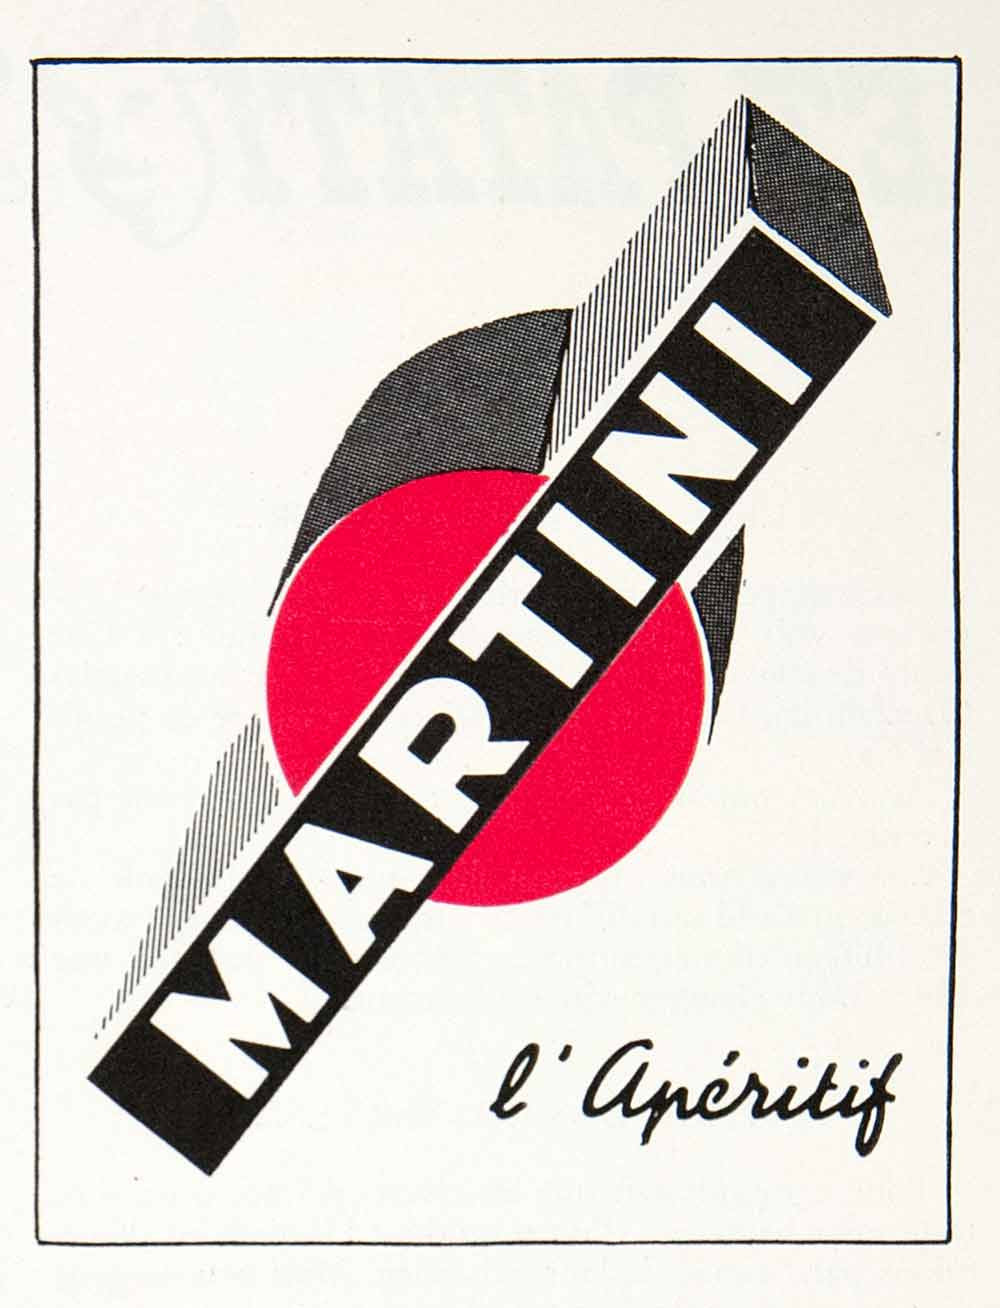 1955 Ad Martini Aperitif Alcohol Beverage Drink French Advertising VEN2